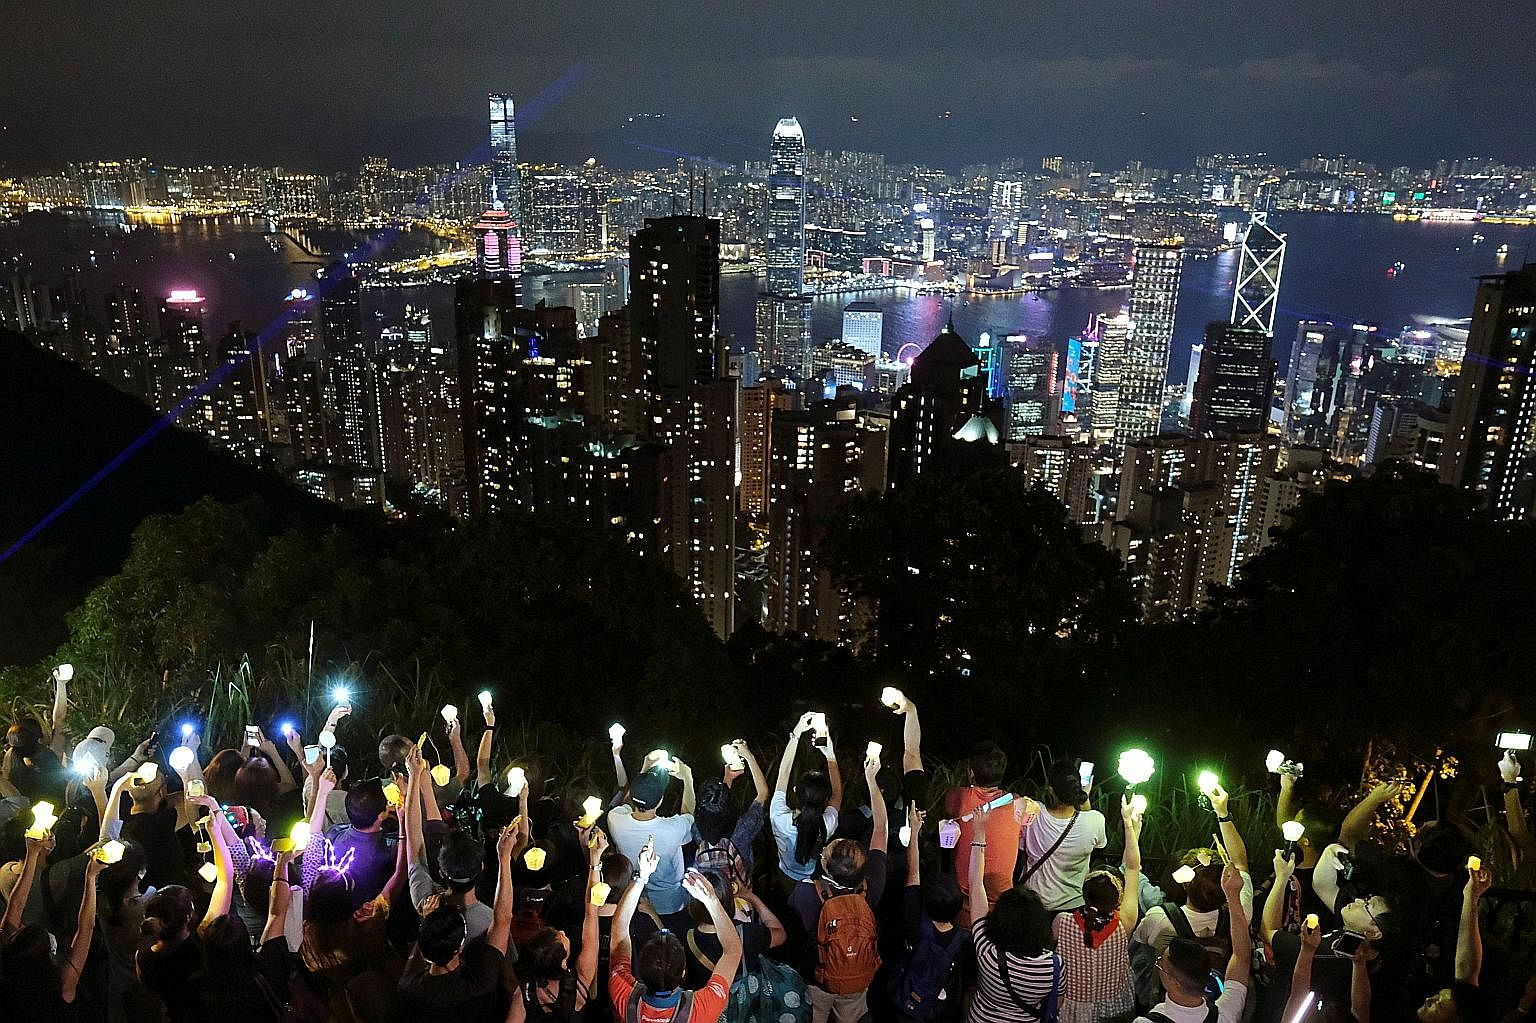 Hong Kong pro-democracy protesters took to the hills, including Victoria Peak, to form flashlight-carrying human chains last night, using the Mid-Autumn Festival as an occasion for their latest rally in more than three months of demonstrations that h